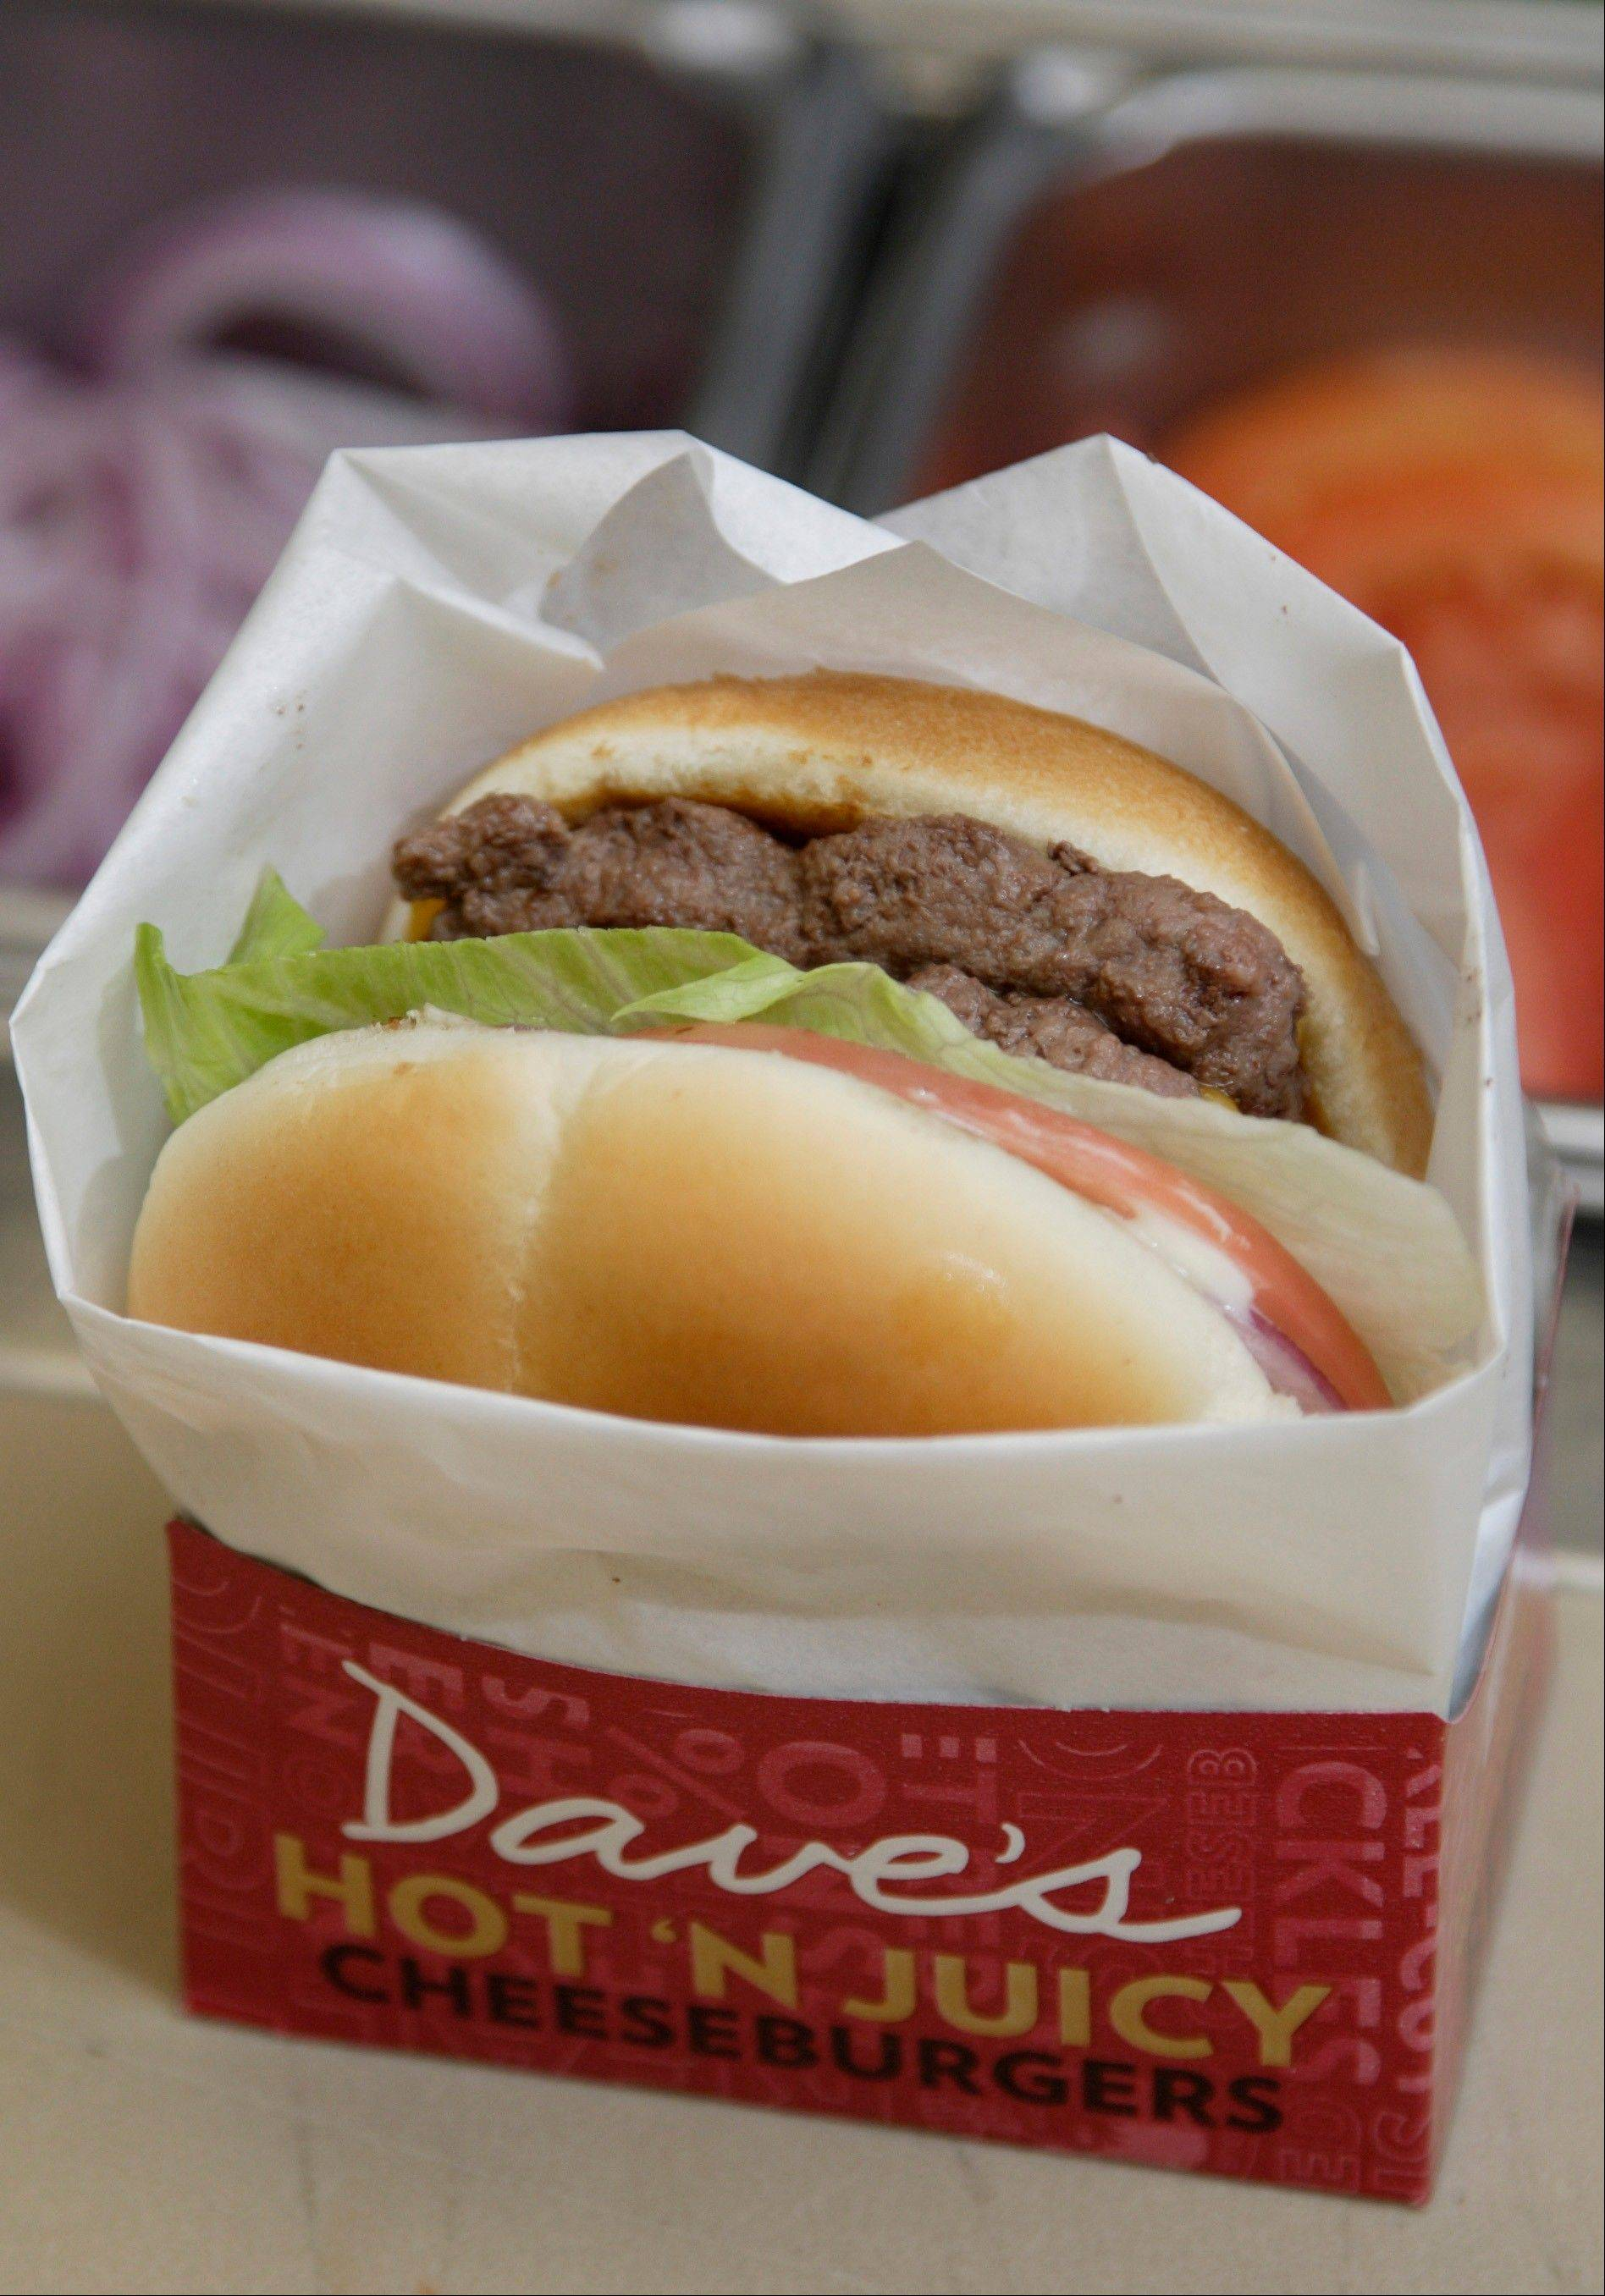 A new Dave's Hot 'N Juicy Cheeseburger is displayed in the Wendy's research and development laboratory at the company's international headquarters in Dublin, Ohio.